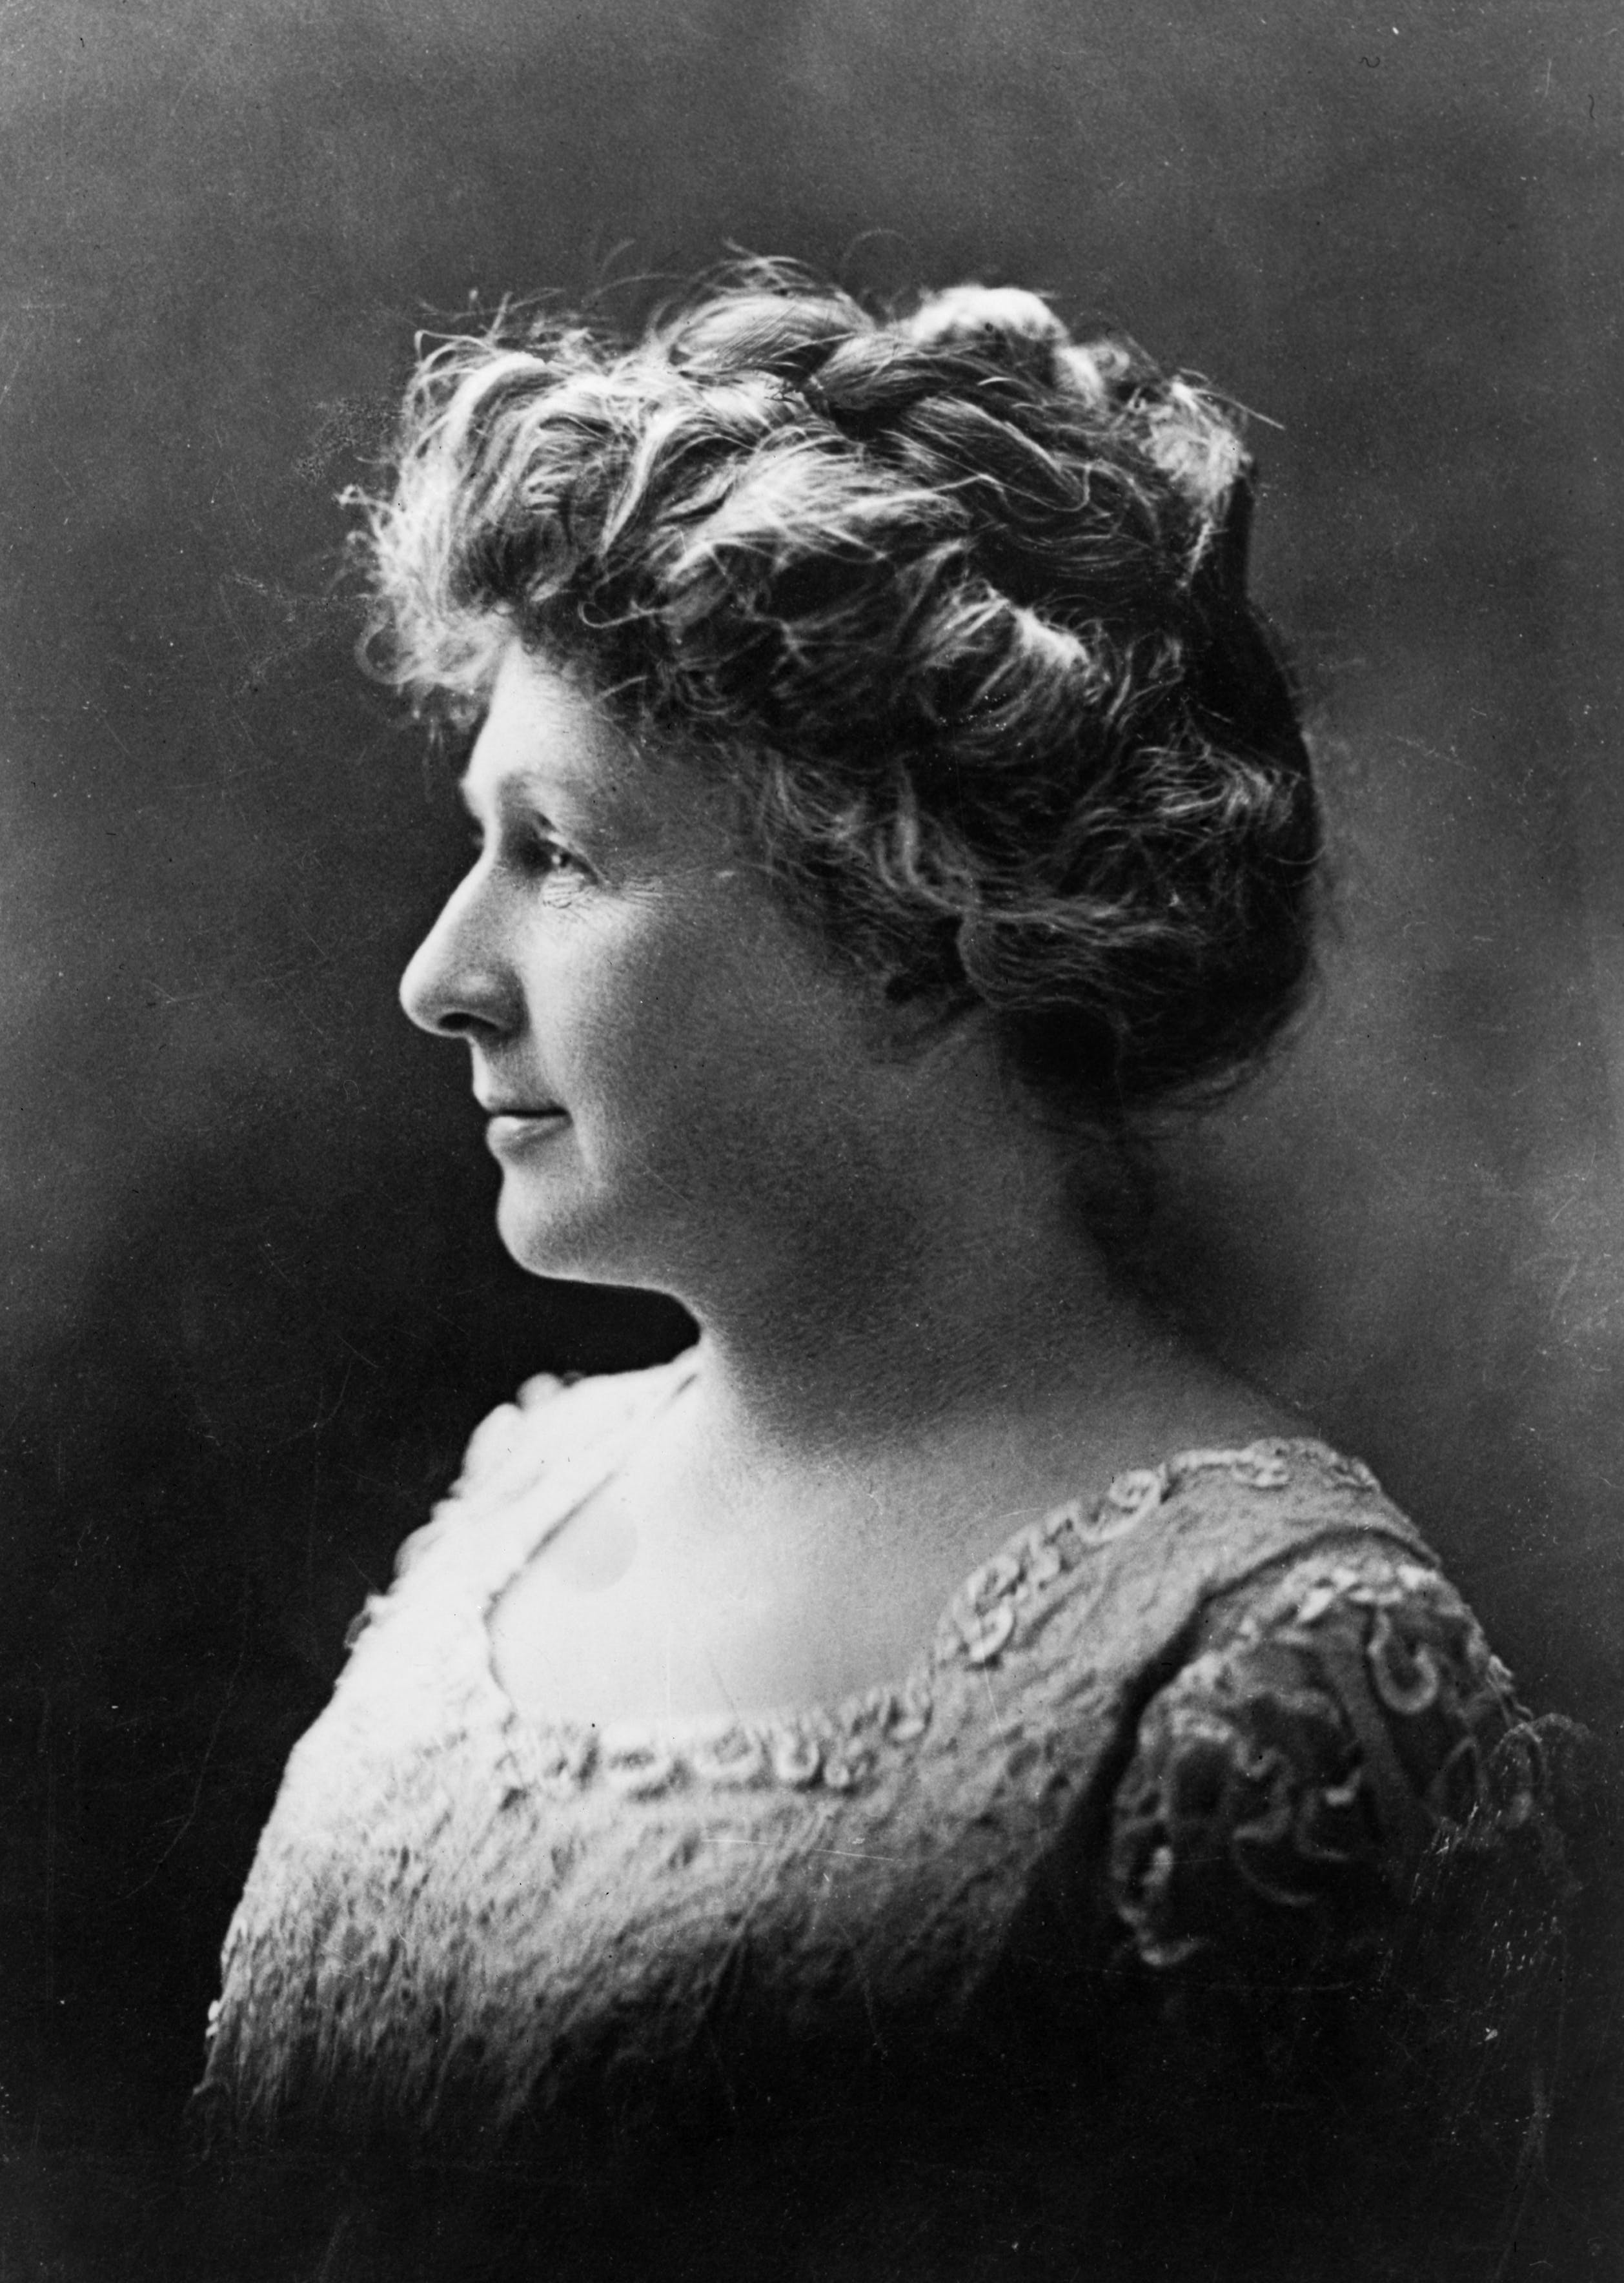 Black and white photograph of Annie Jump cannon, a deaf astronomer